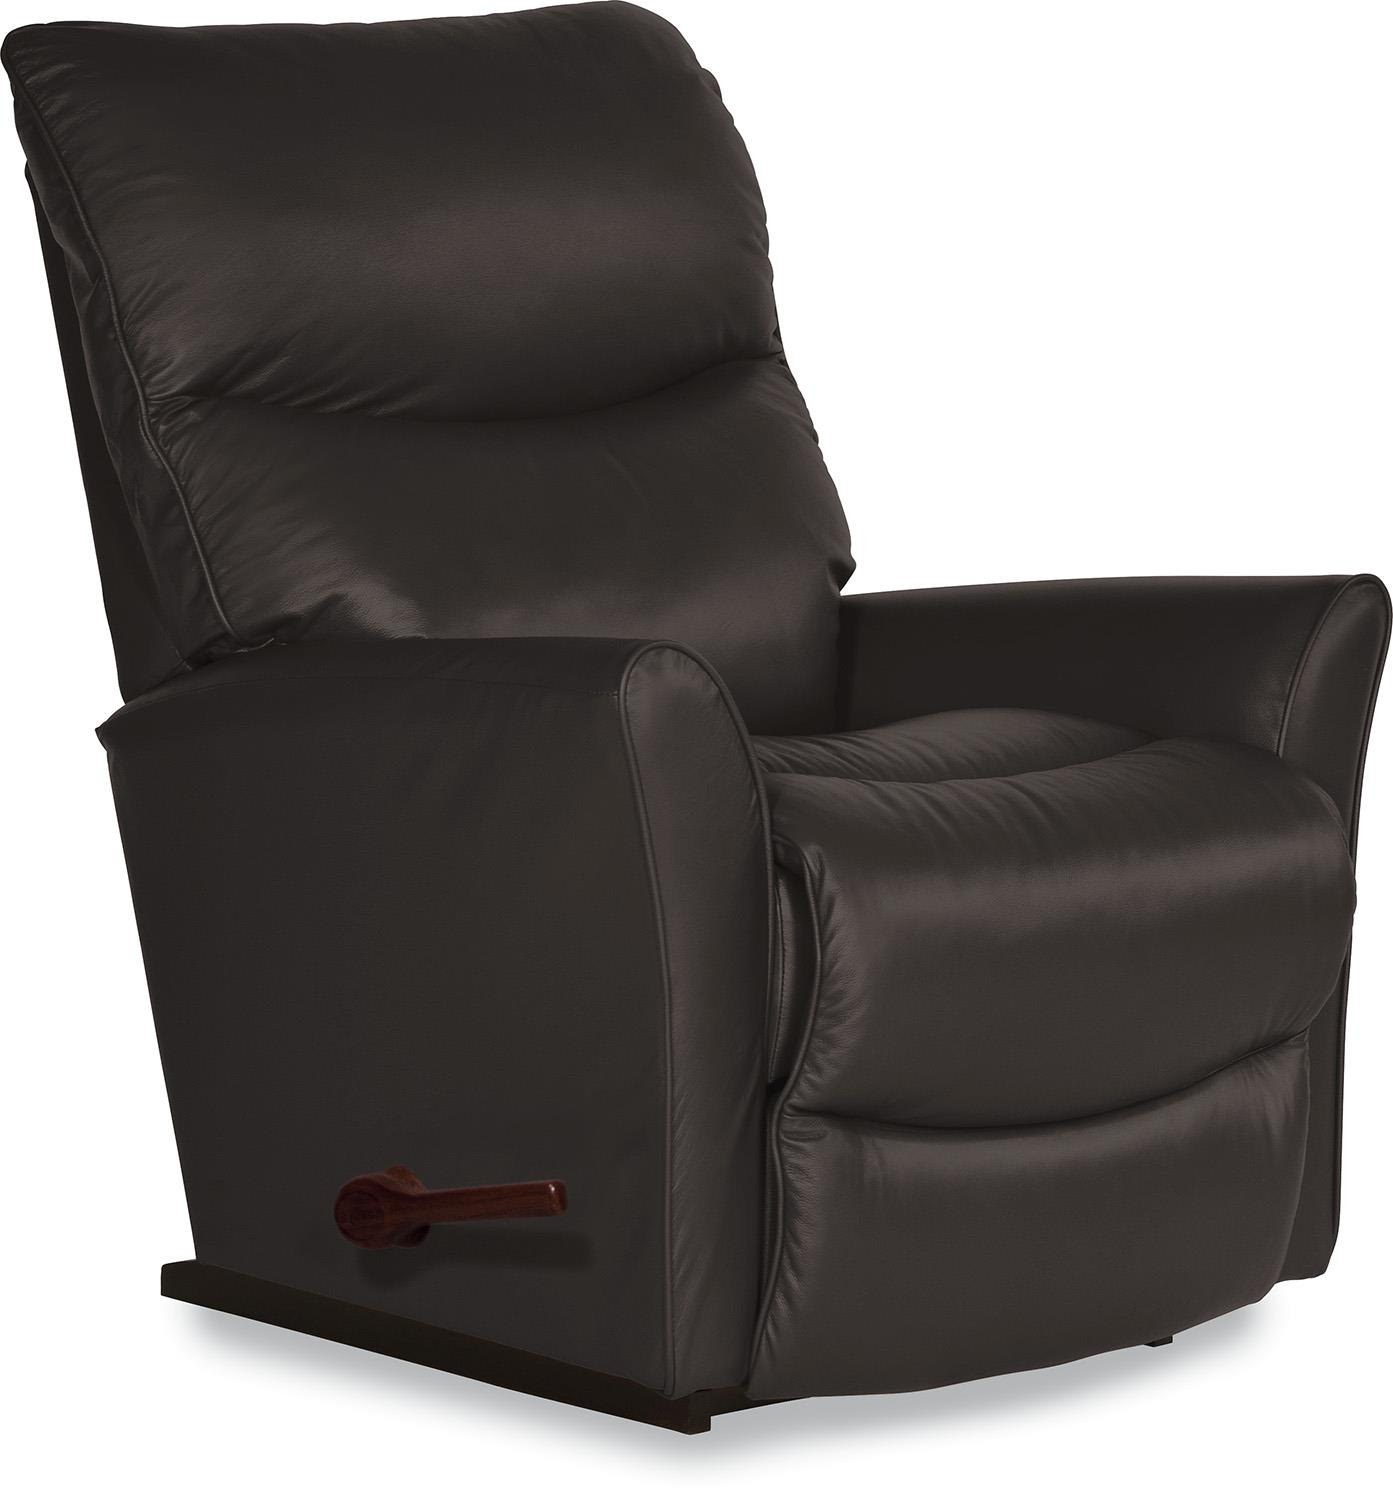 Rowan Small Scale RECLINA-ROCKER® Recliner with Flared Arms